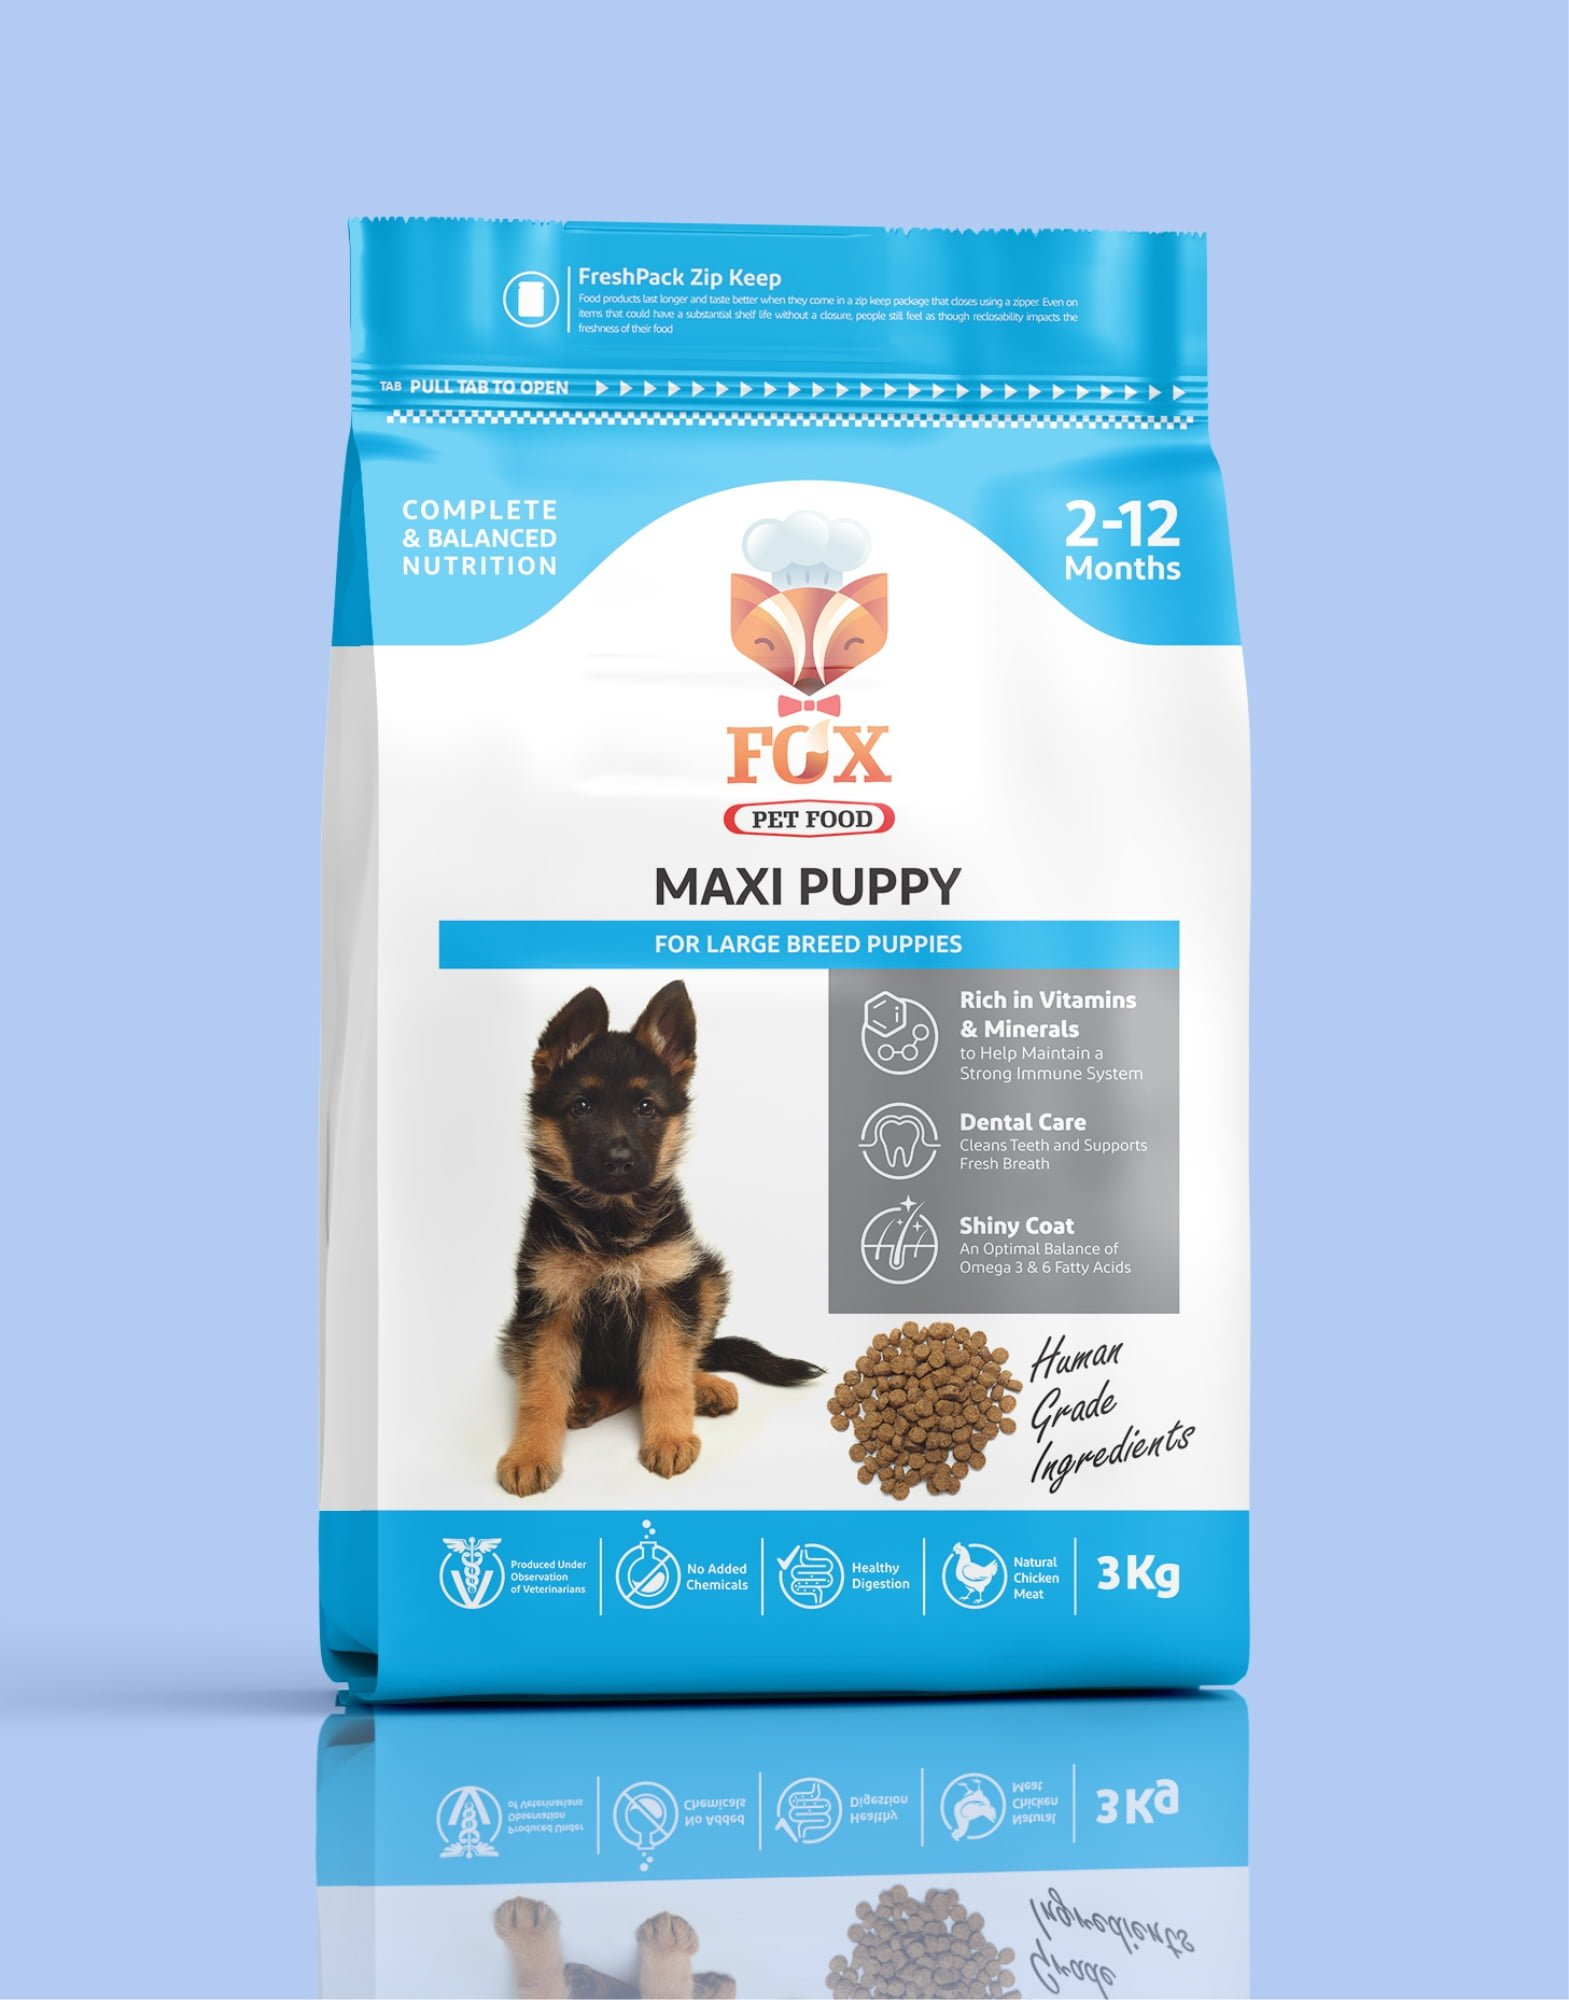 maxi puppy-for large breed puppies-3kg-front